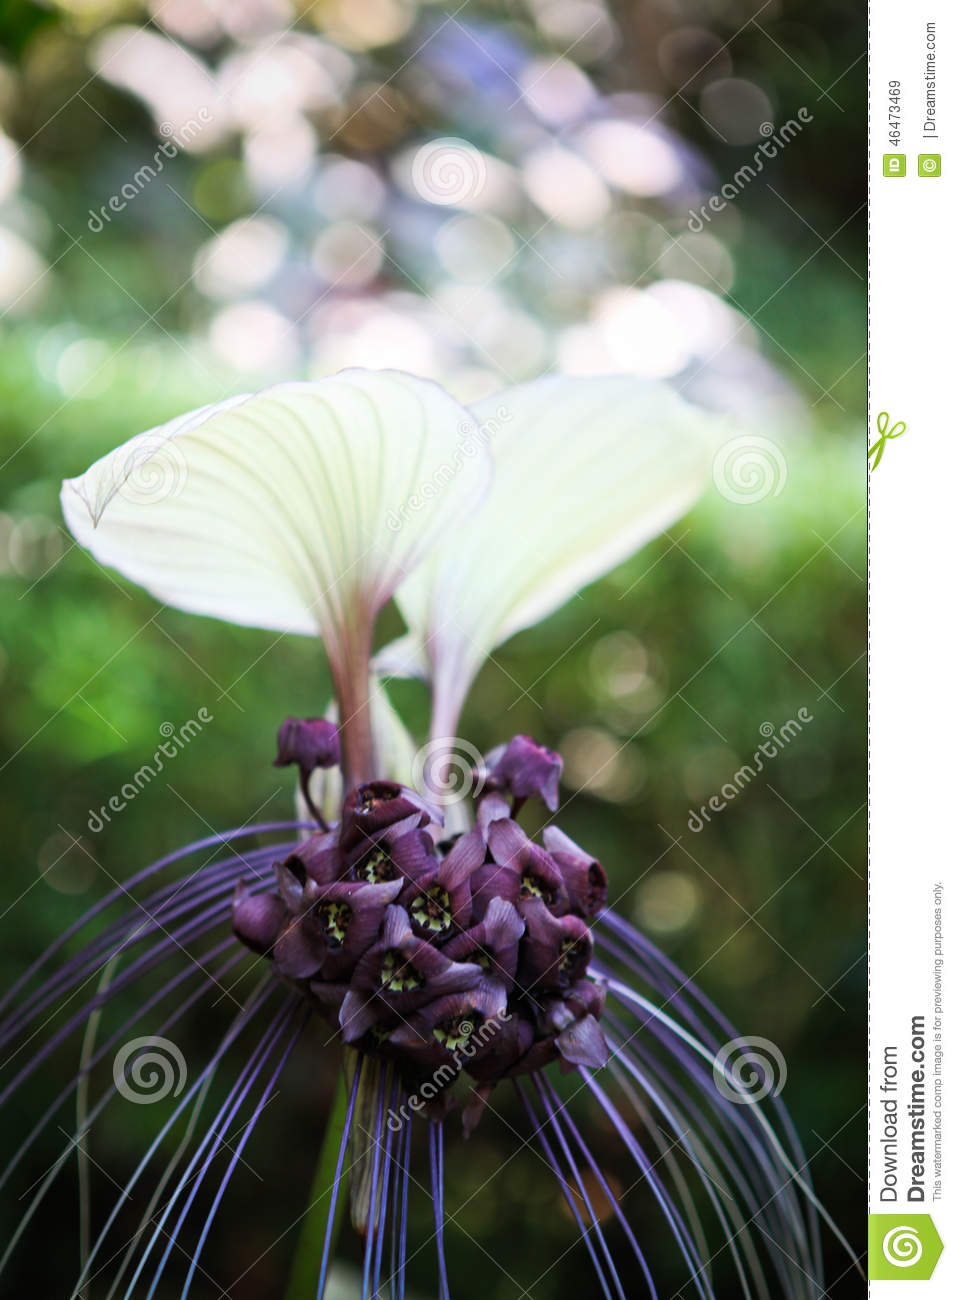 White Bat Flower Stock Image Image Of Purple Malaysia 46473469